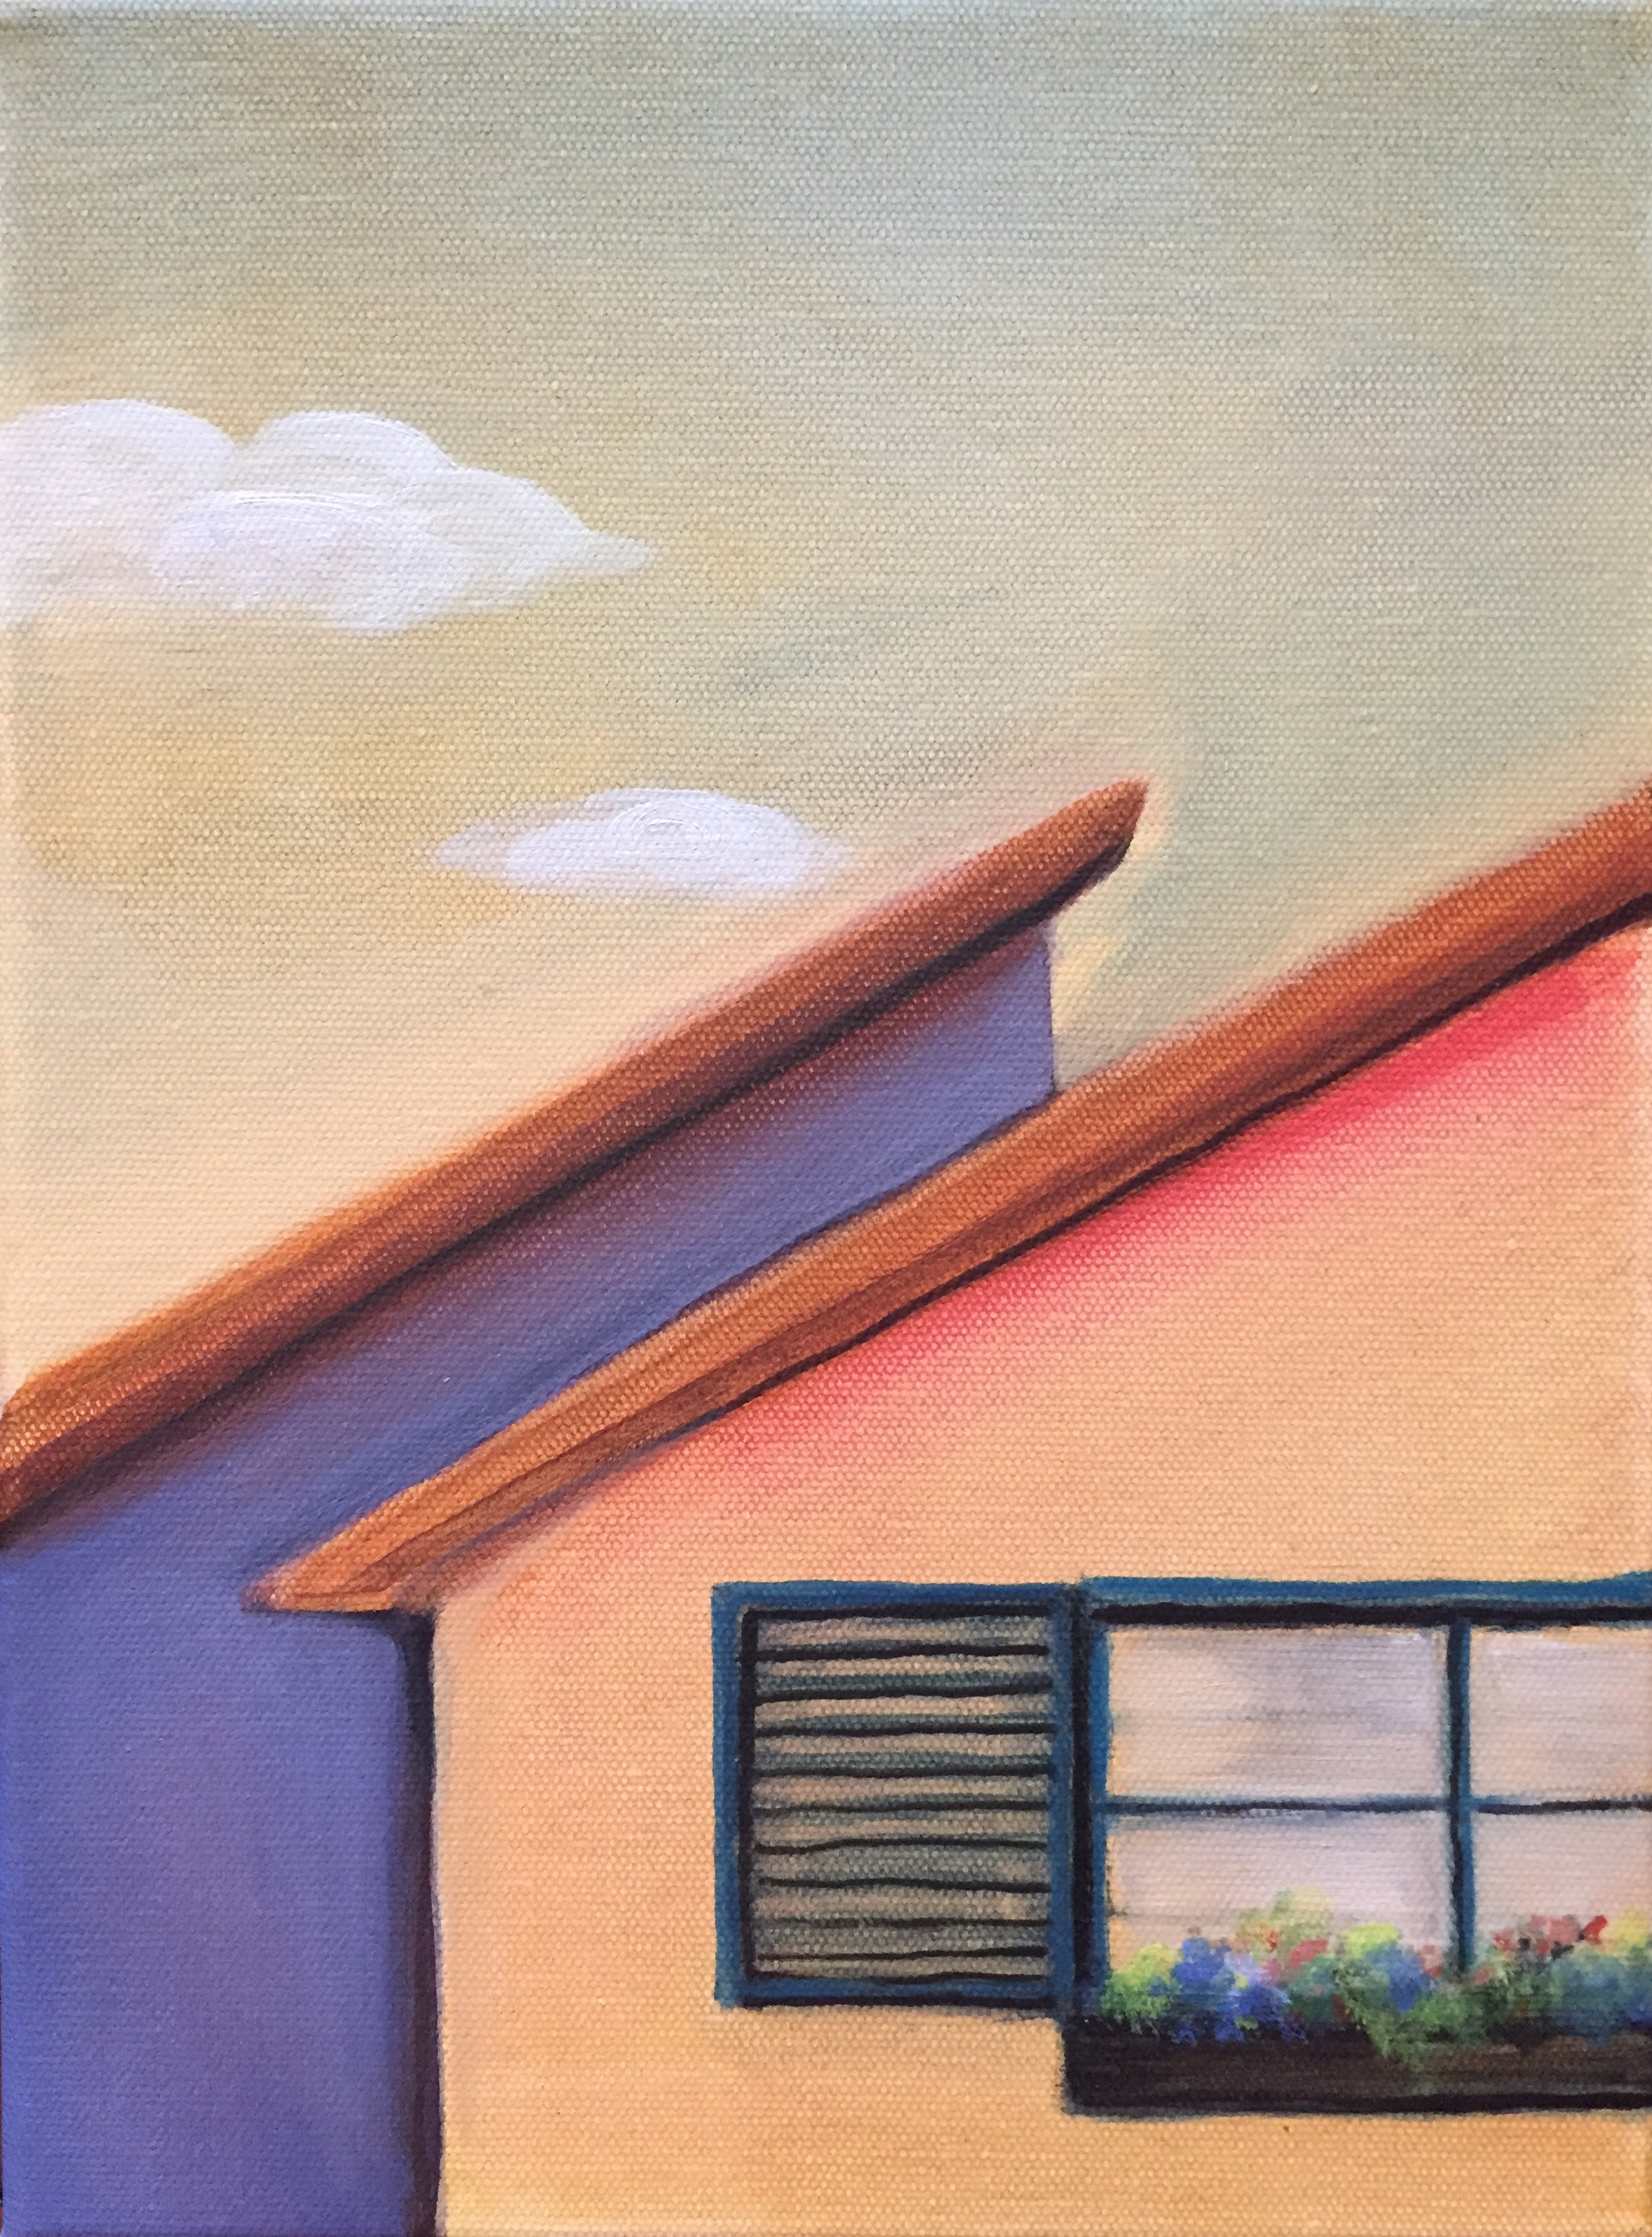 Rooftops and a Window by H. Warr